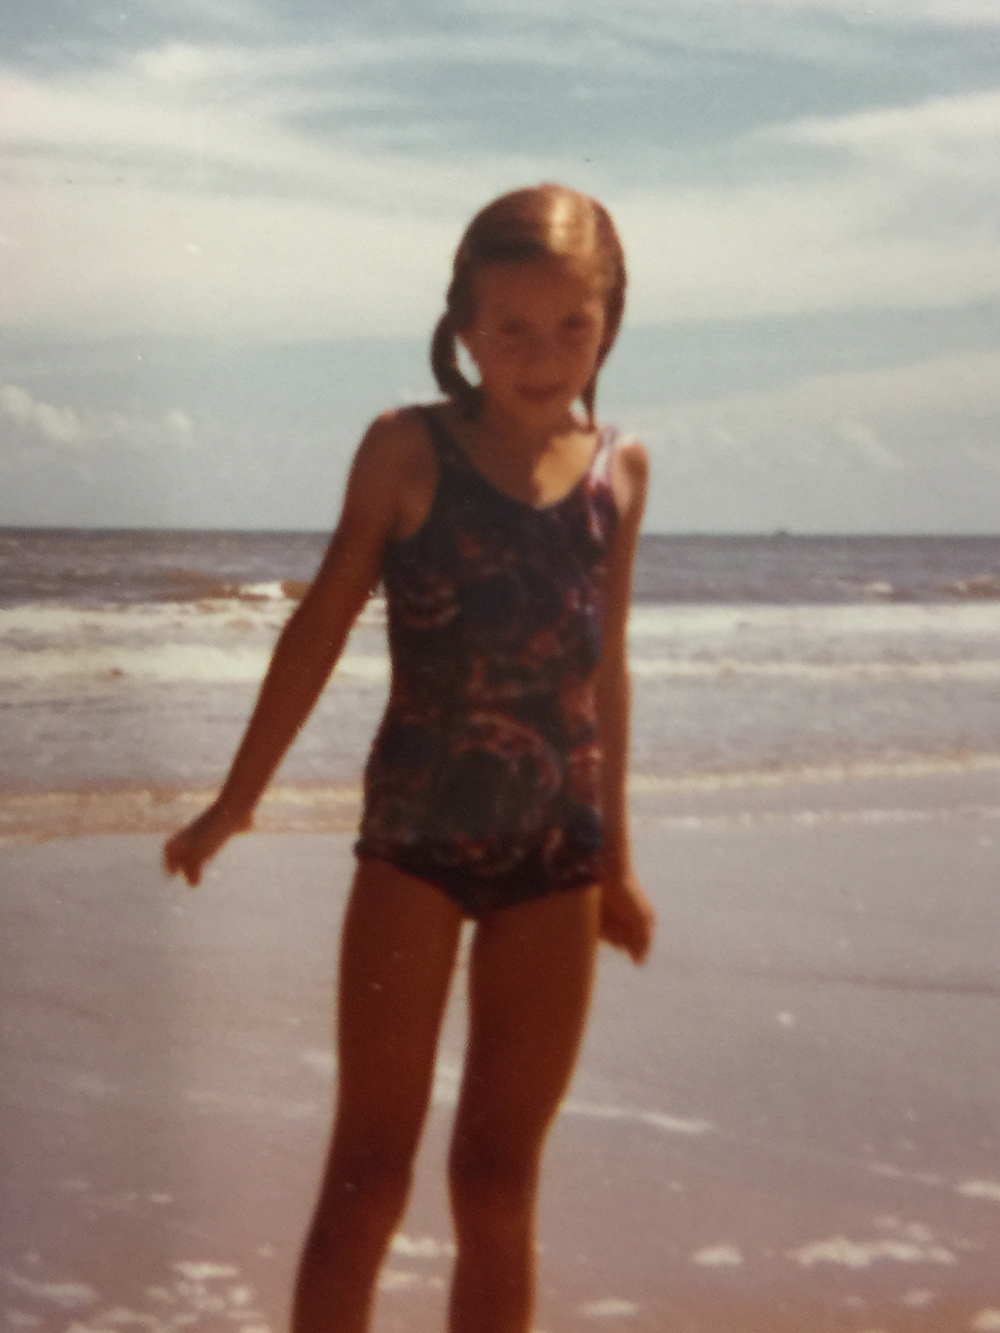 Betsy, age 8, on the beach in Ft. Lauderdale, Florida.